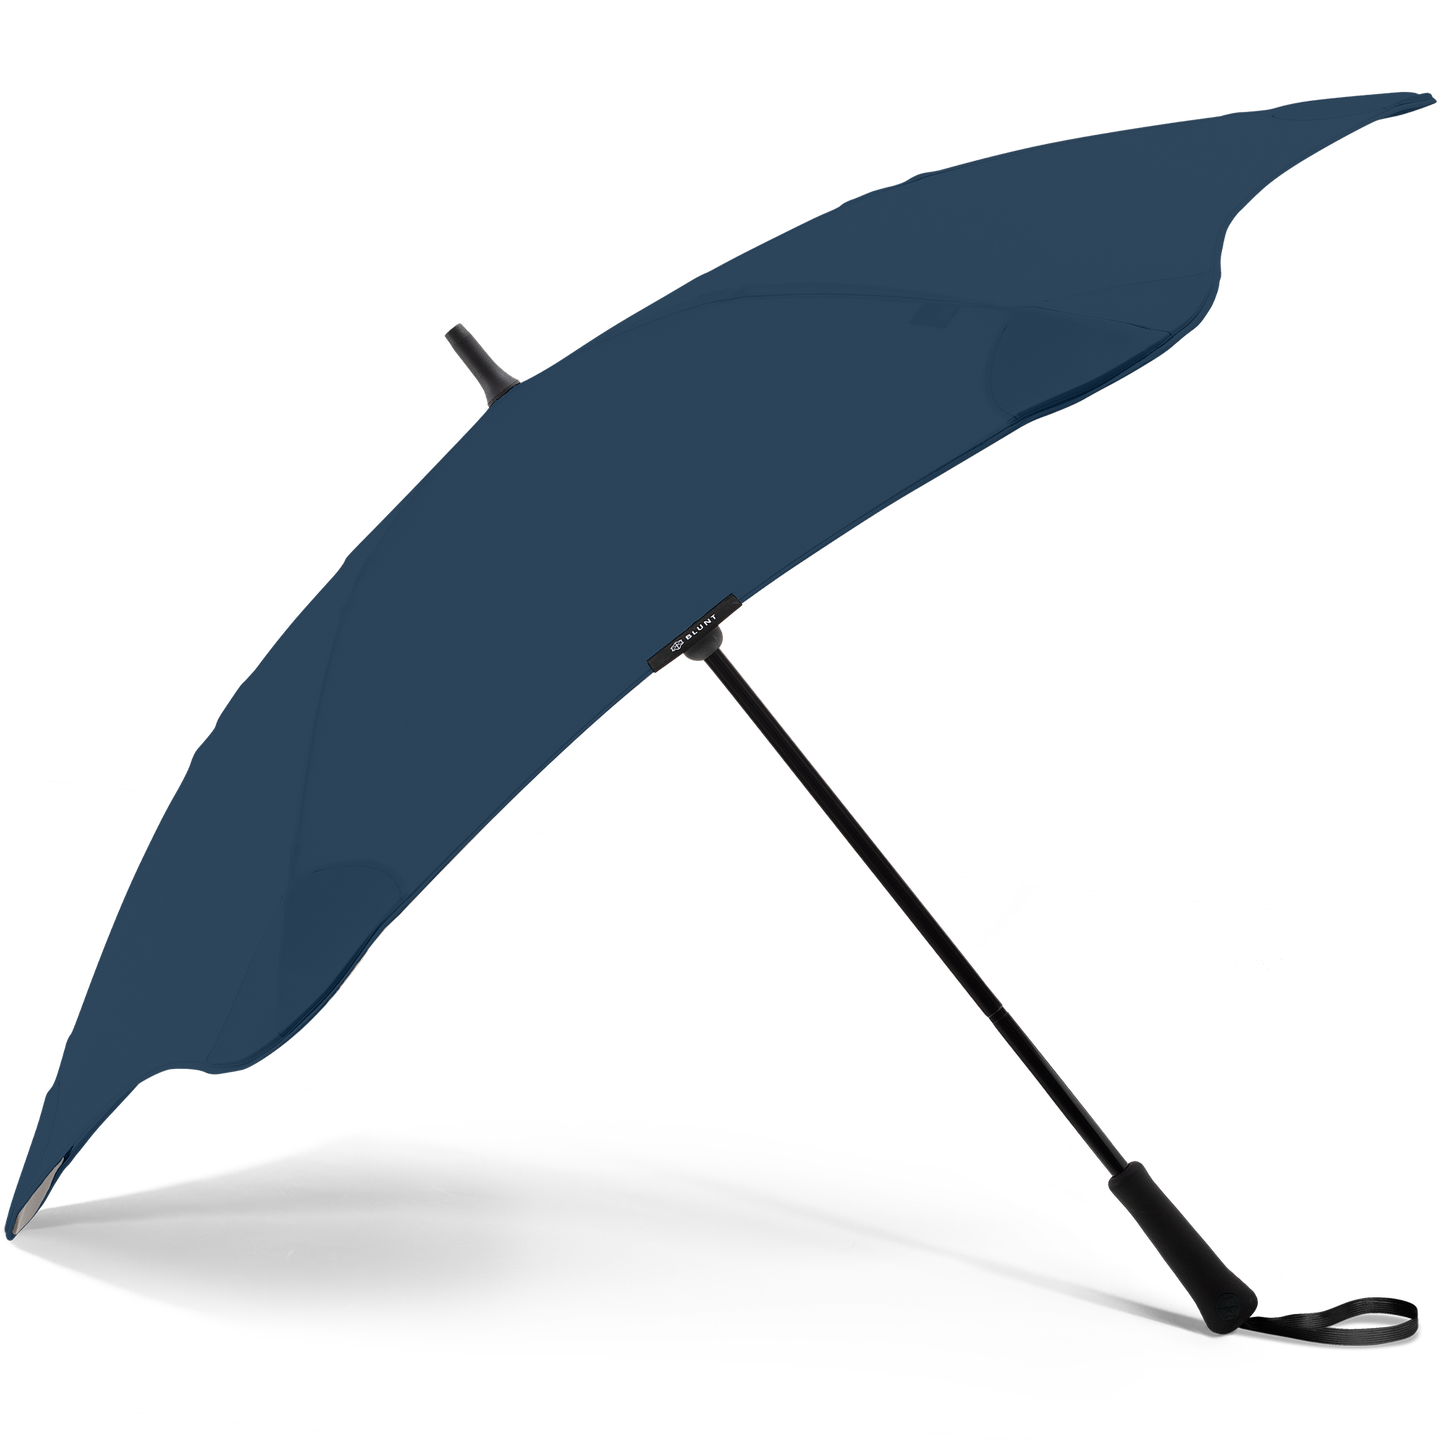 2020 Classic Navy Blunt Umbrella Side View